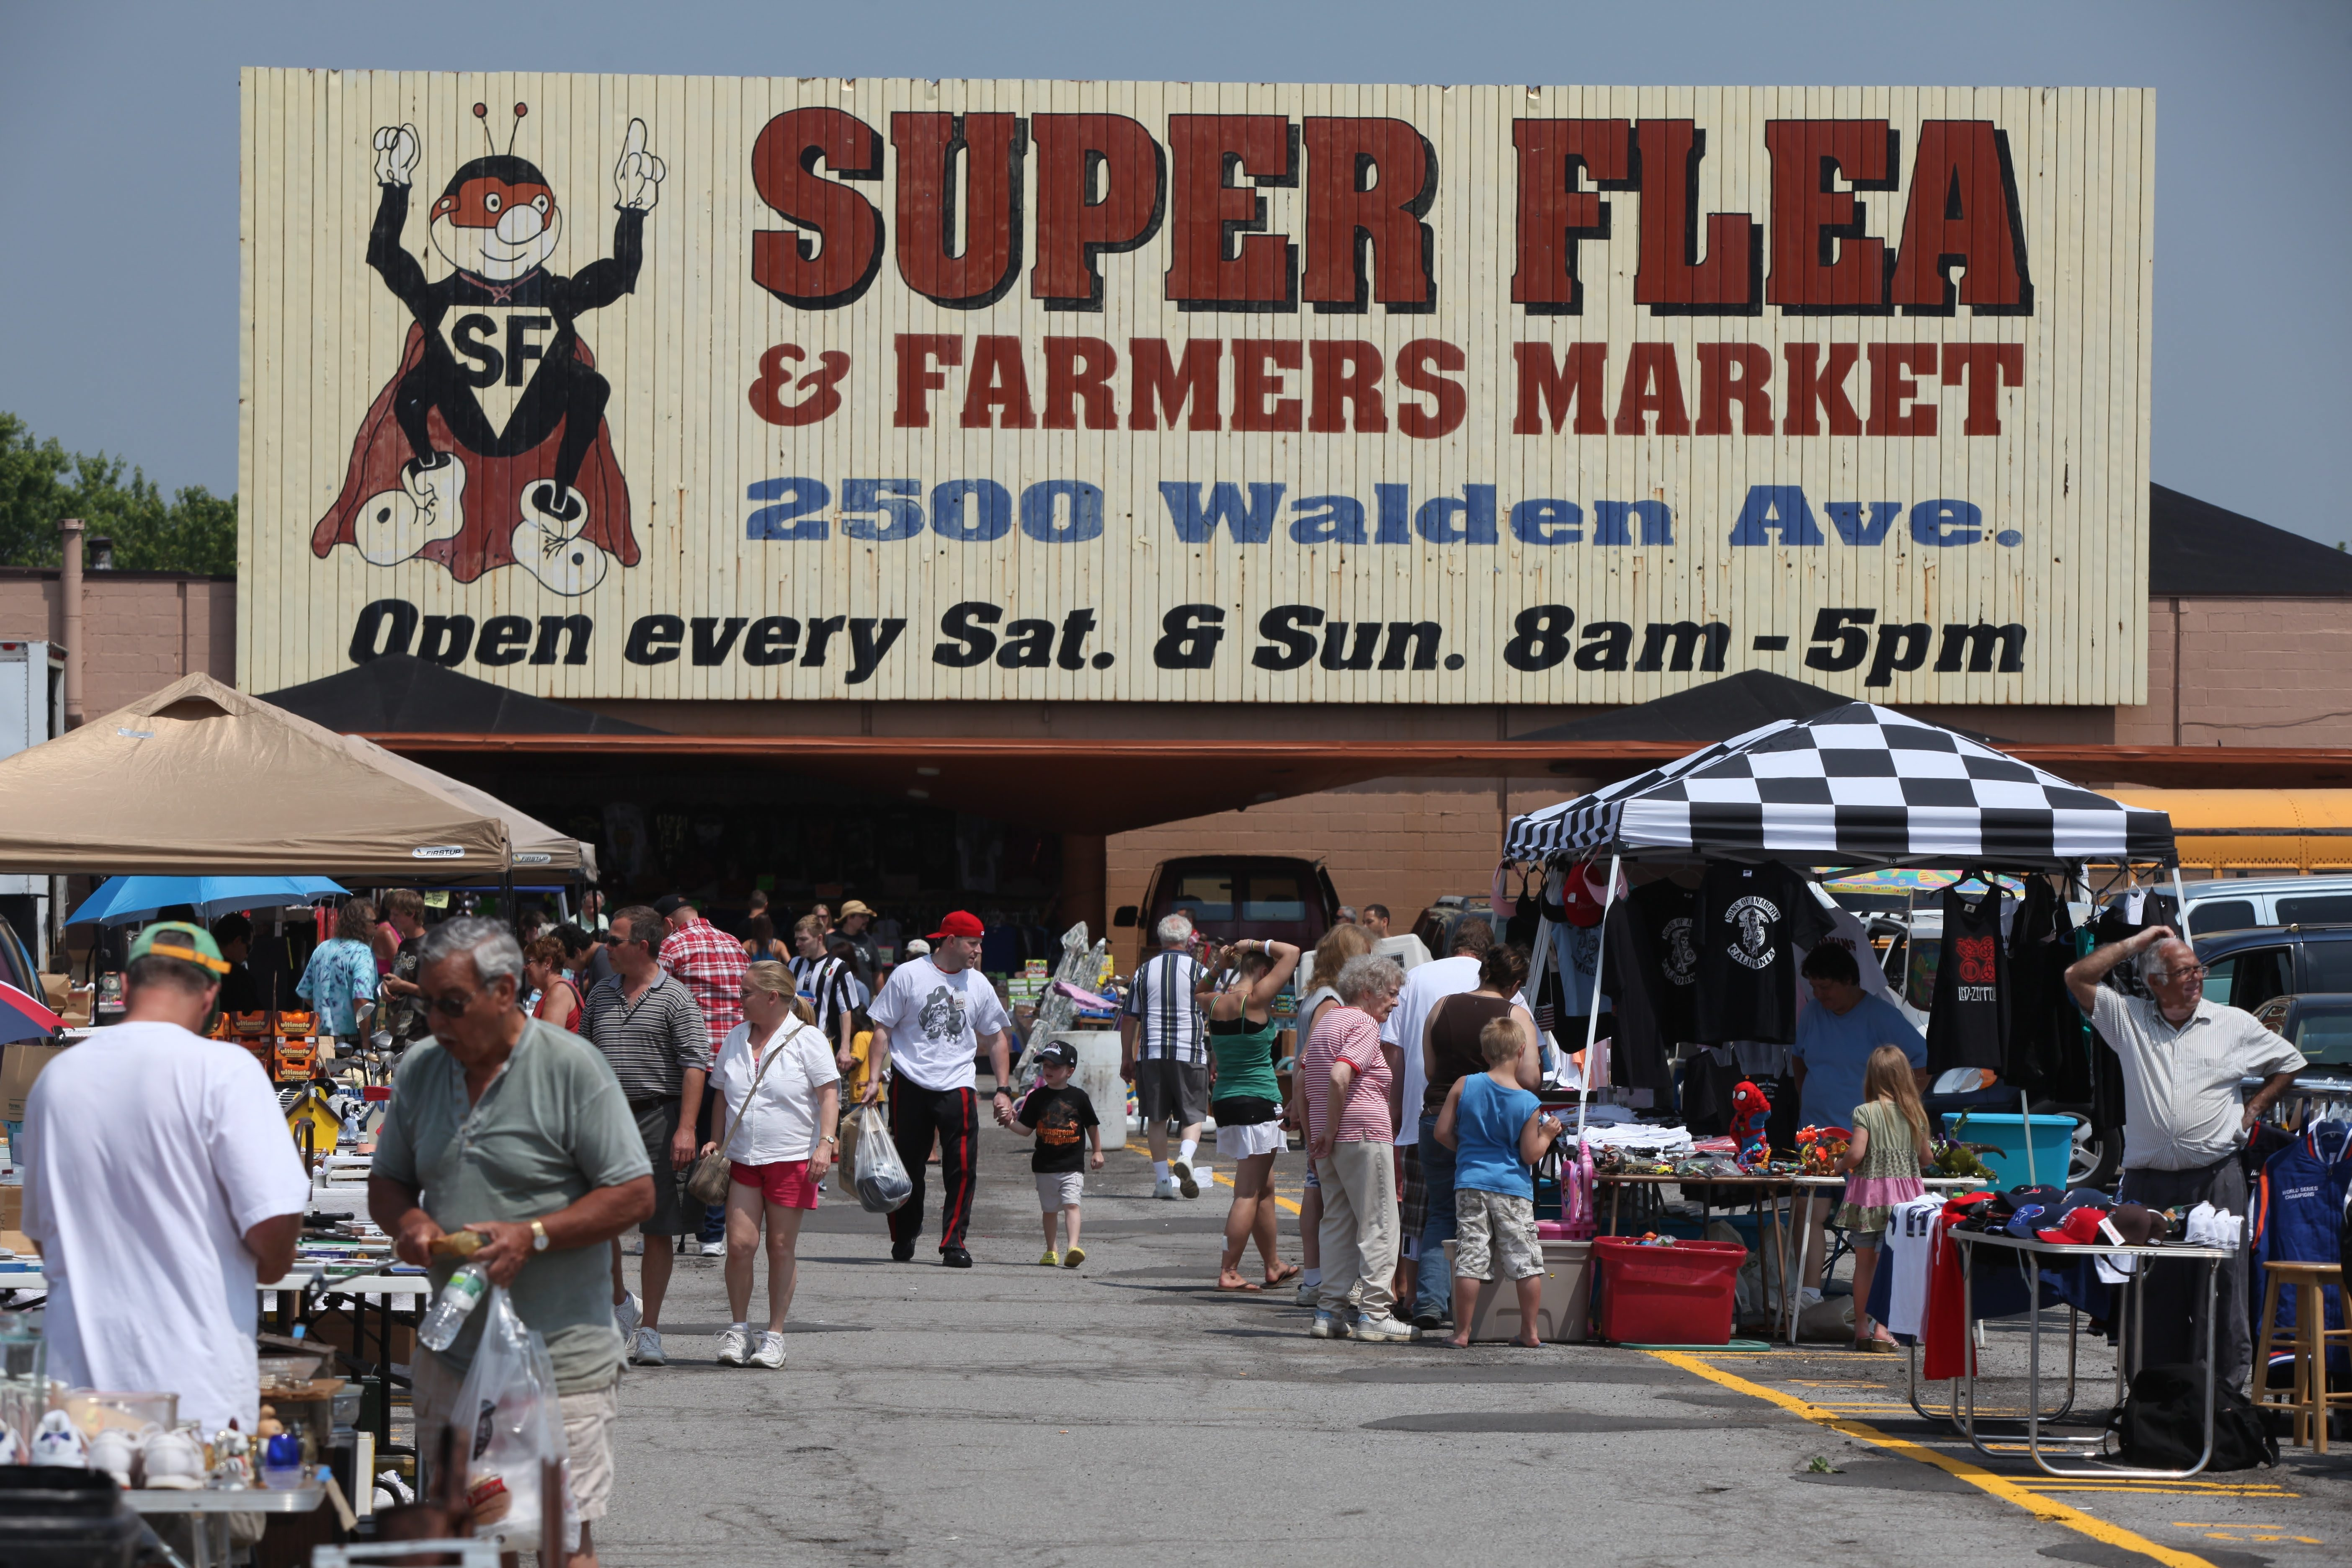 Charles Lewis/Buffalo News file photo    Walmart has announced a proposal to build a 24-hour Supercenter at the site of Super Flea & Farmers Market.